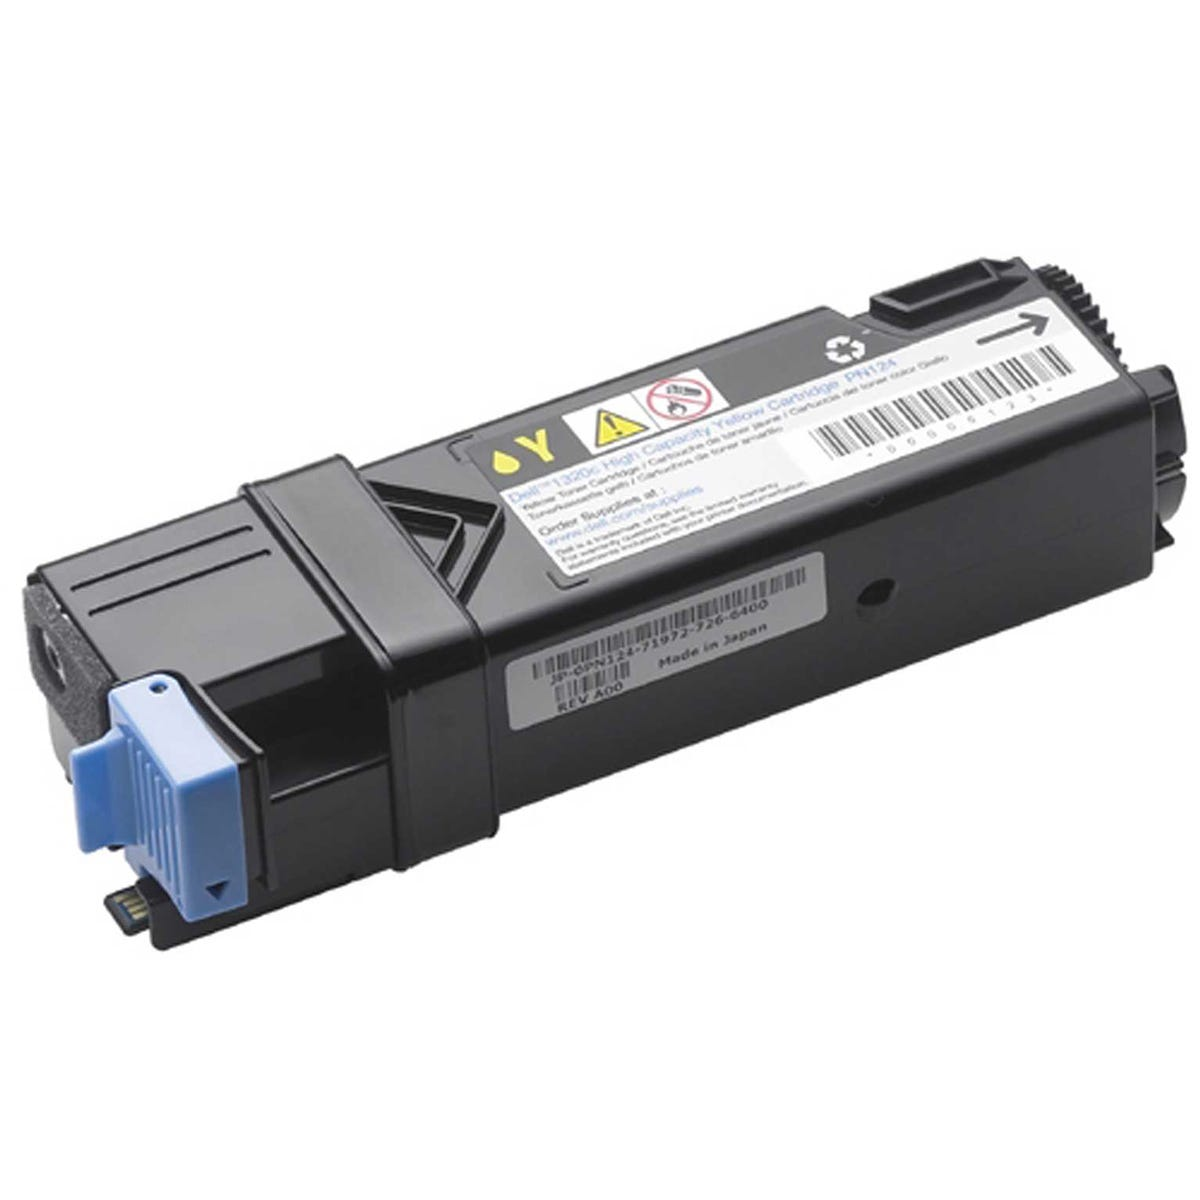 Dell RY856 Printer Ink Toner Cartridge 593-10264, Yellow.